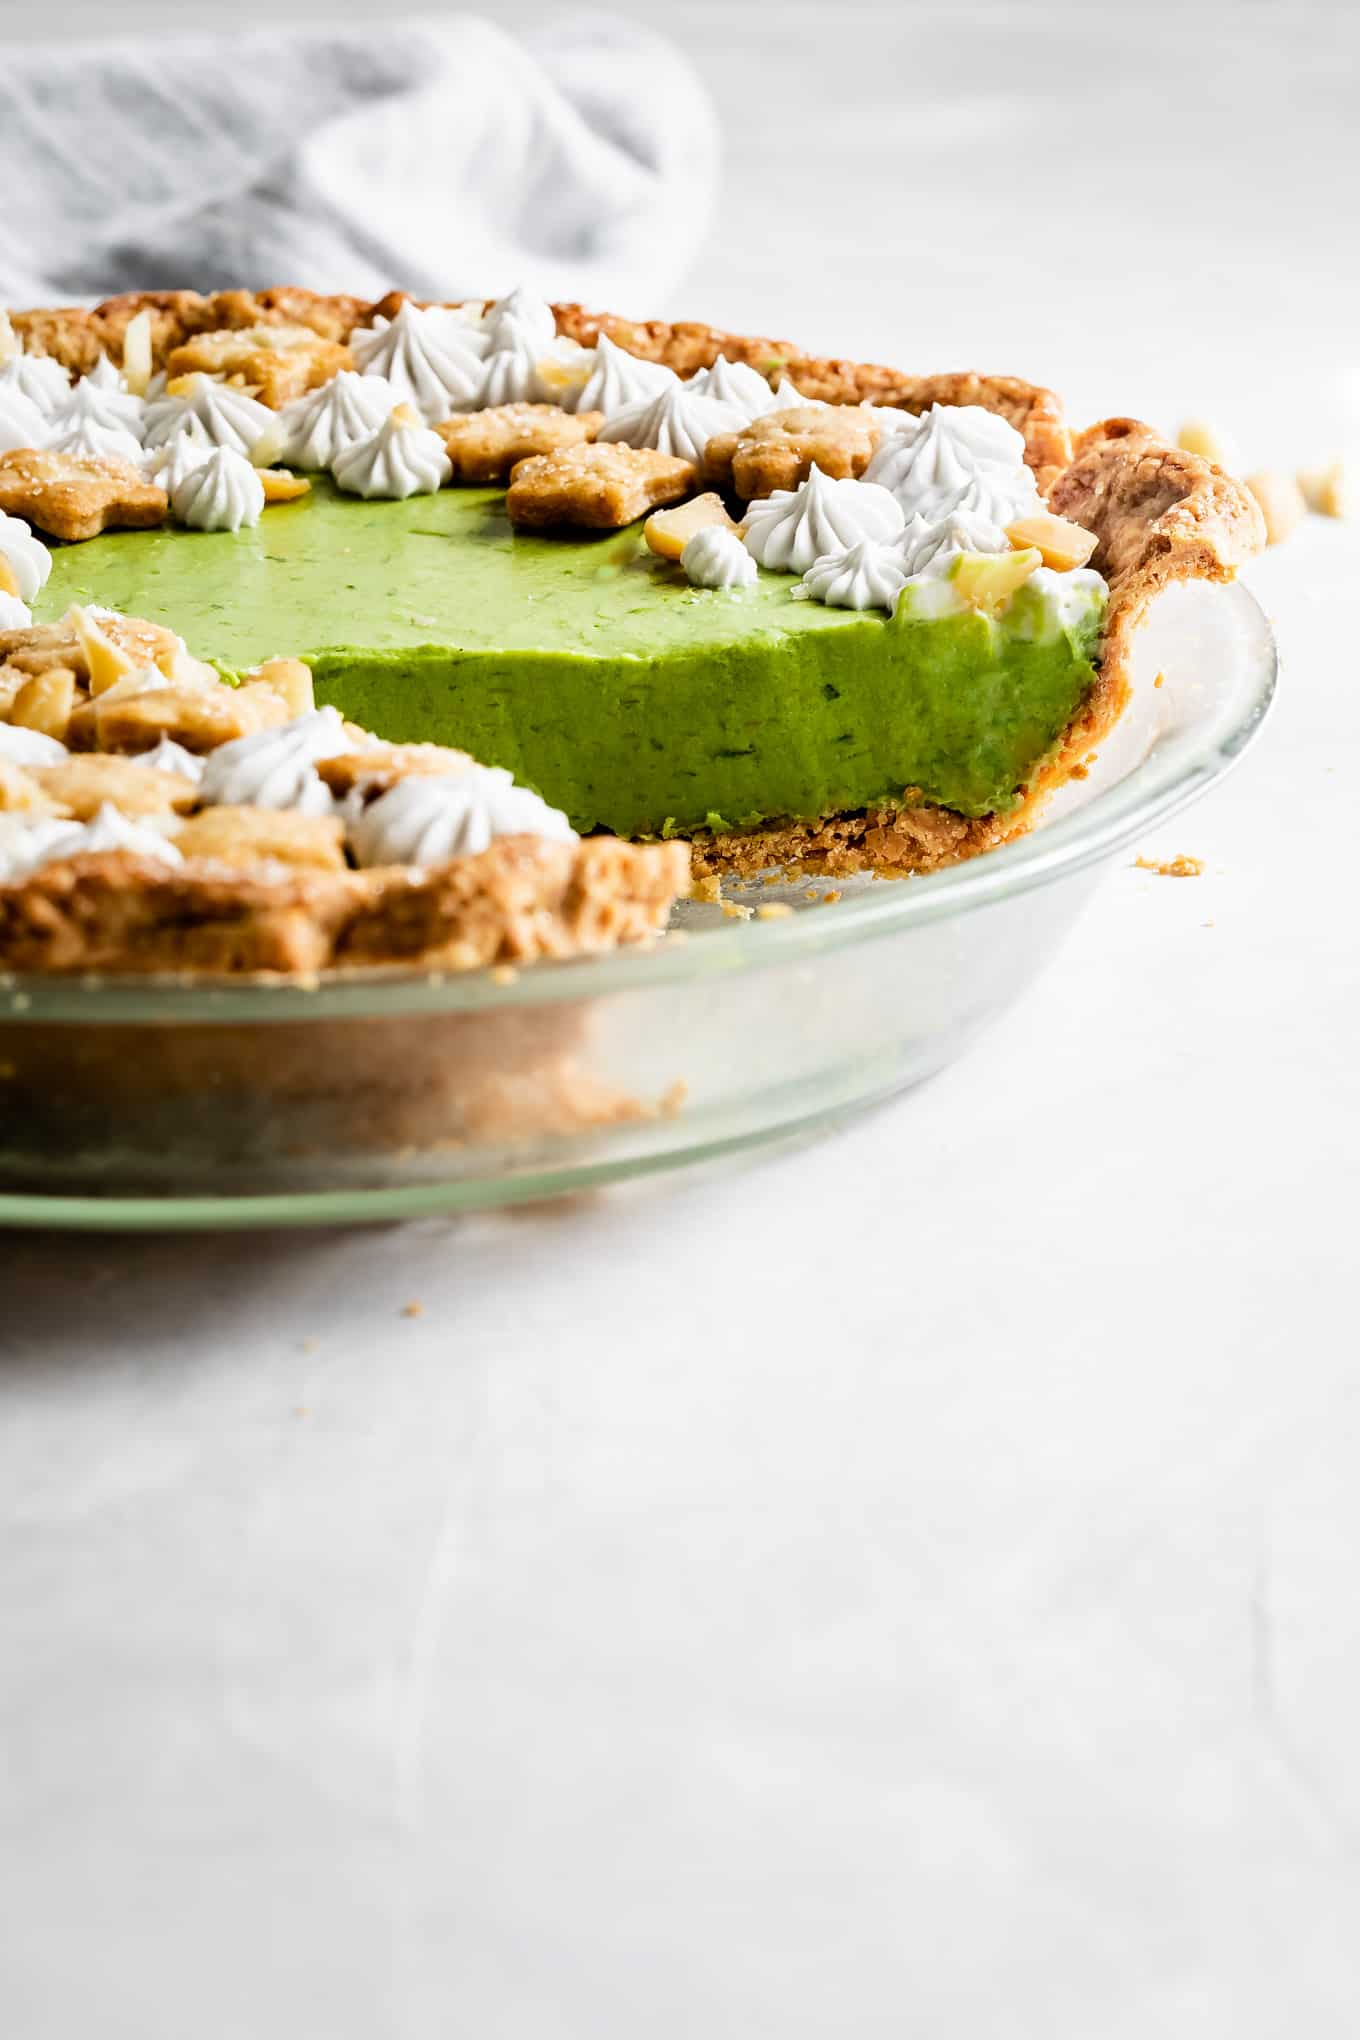 No-Bake Key Lime Pie with Matcha Mousse